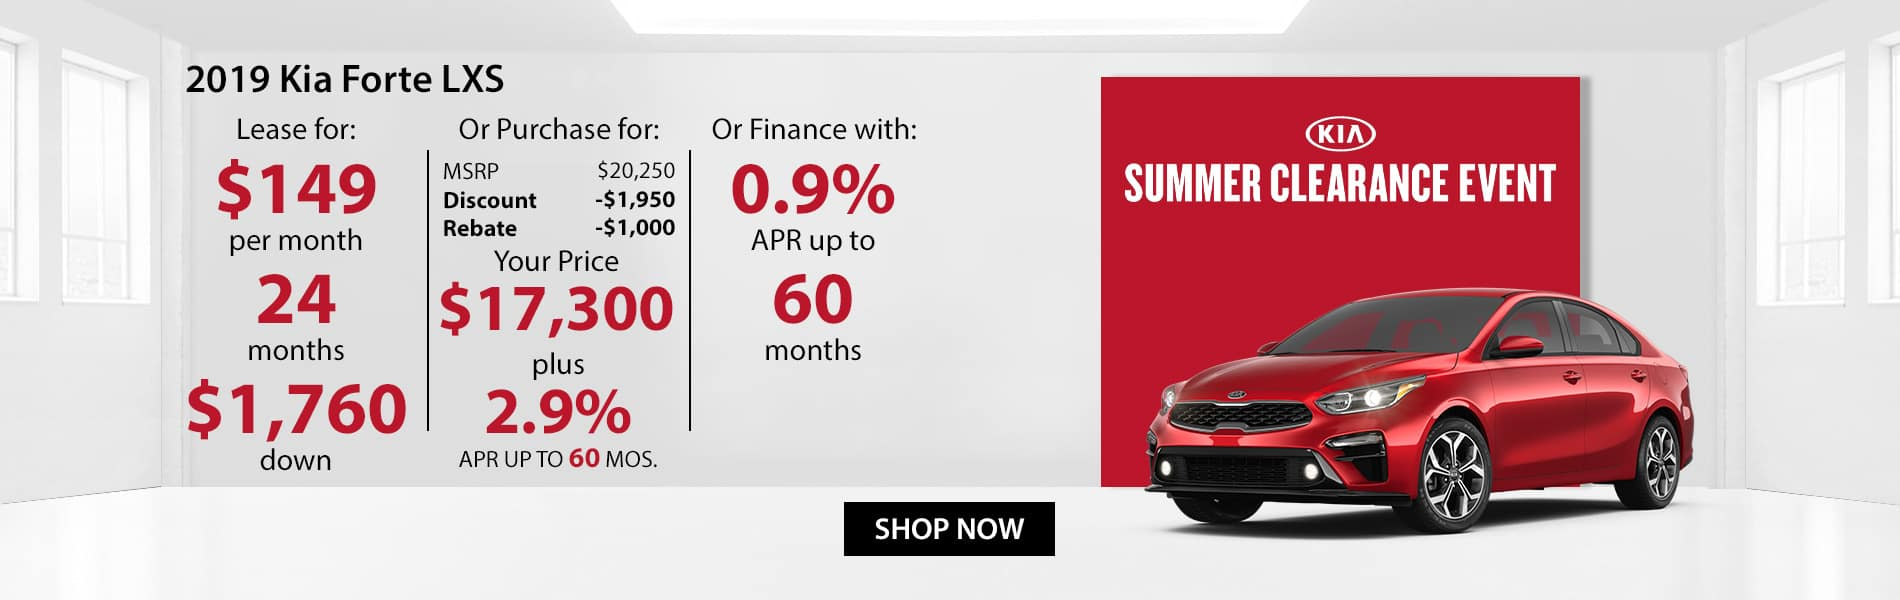 Special offer on 2019 Kia Forte LXS Lease for $149 or Purchase for $17,300 with 2.9% APR or get 0% APR for 60 months.